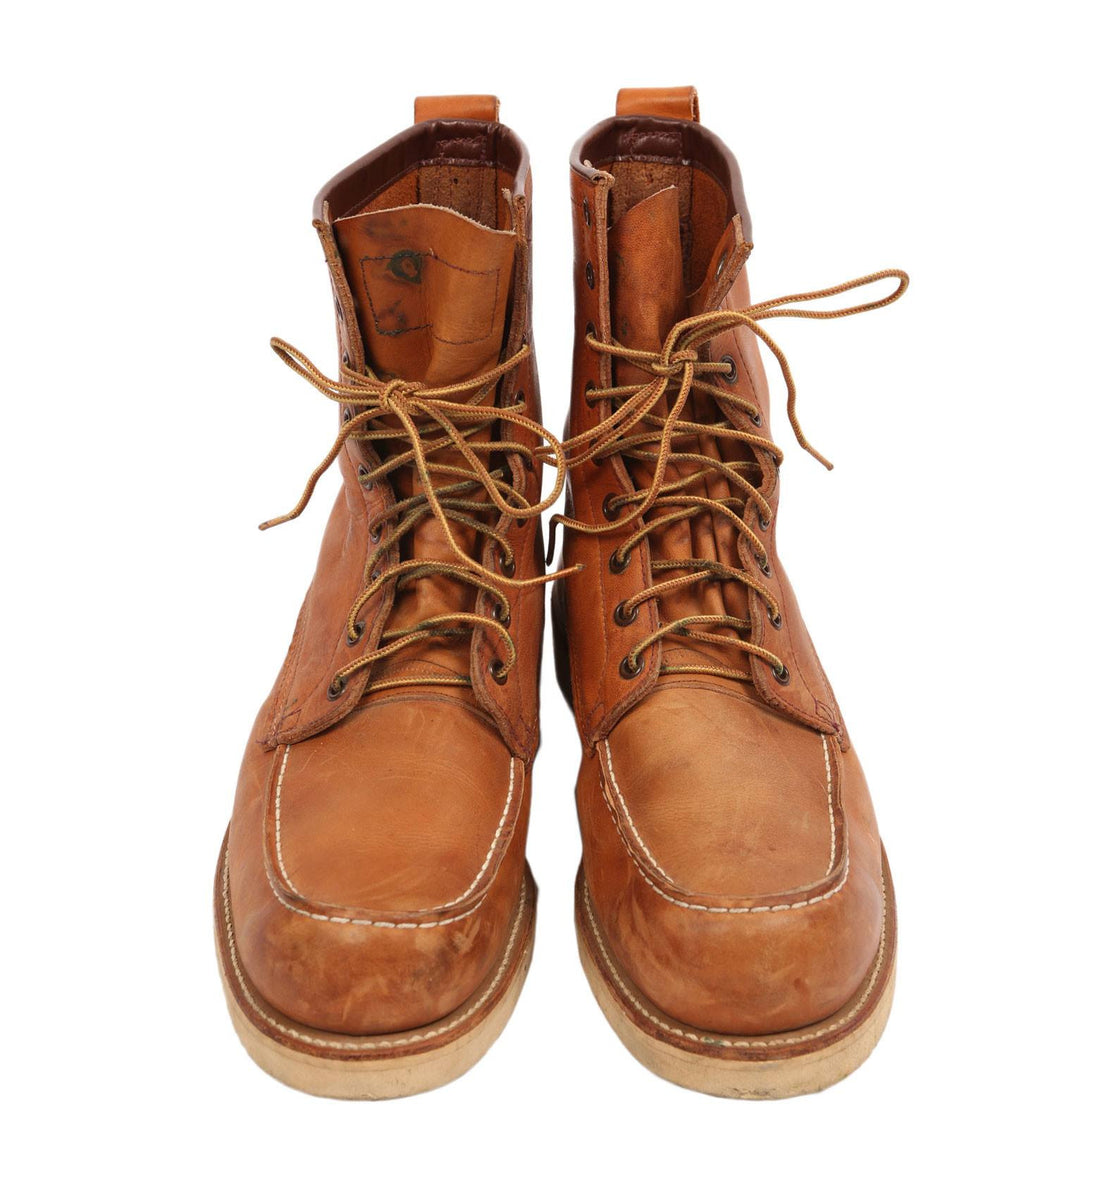 Vintage Redwing Irish Setter Boots - Vintage: Men's: Shoes - Iron and Resin